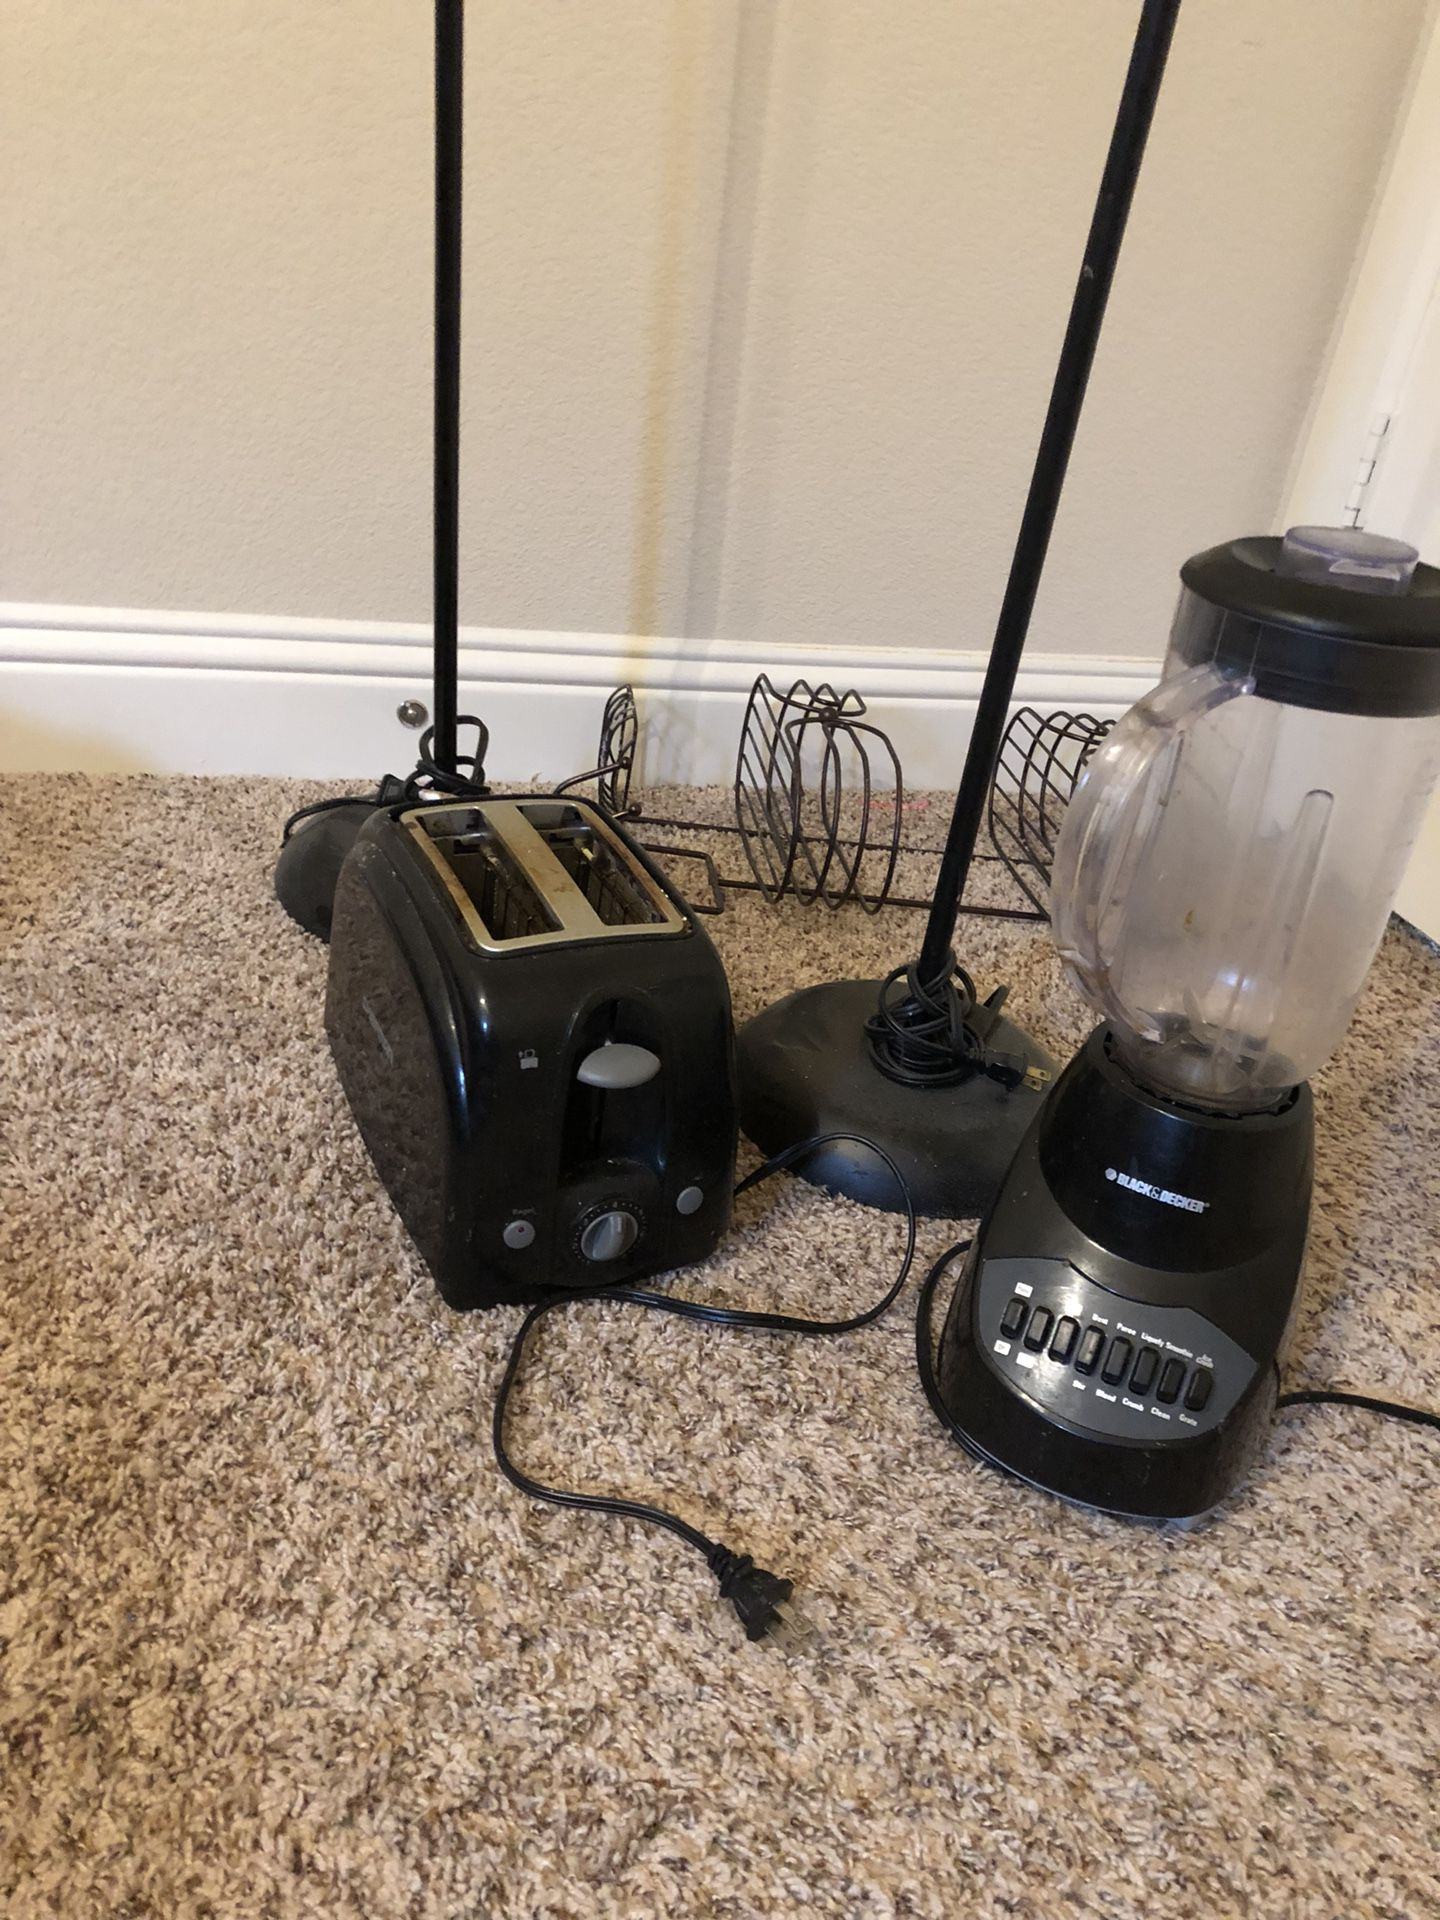 Toaster and juicer